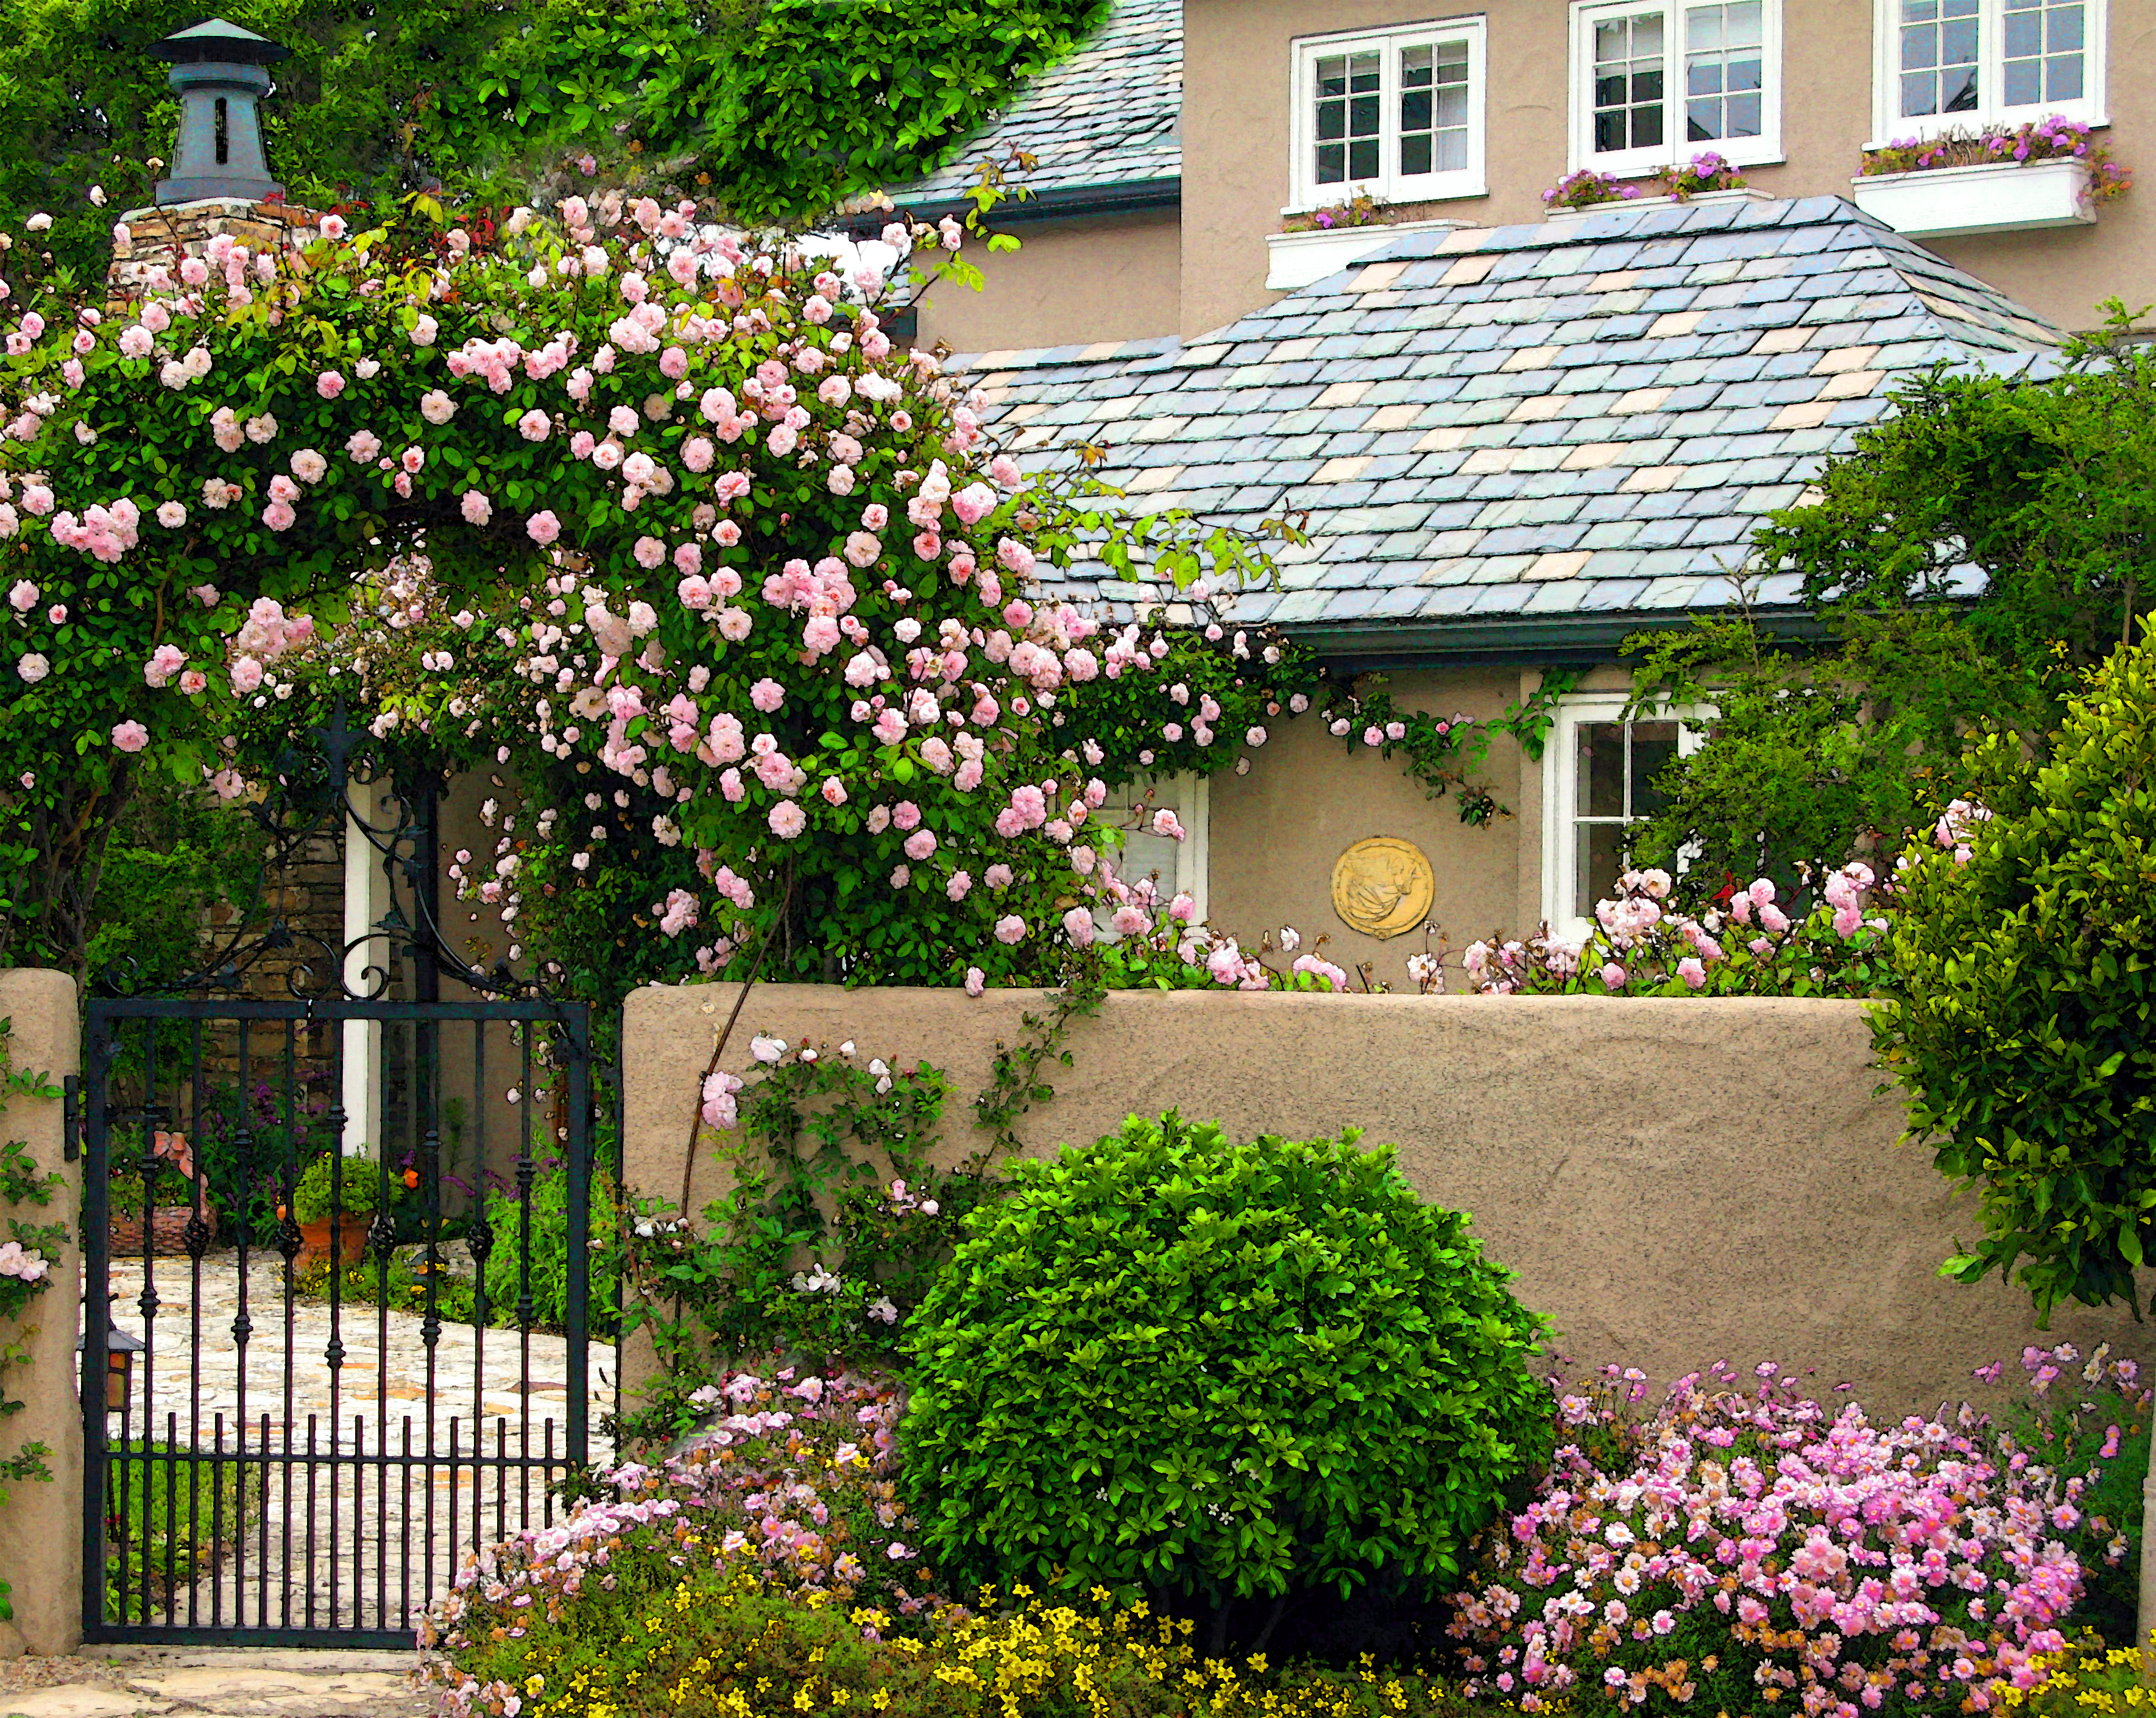 Carmel s cottage gardens once upon a time tales from for White house rose garden design